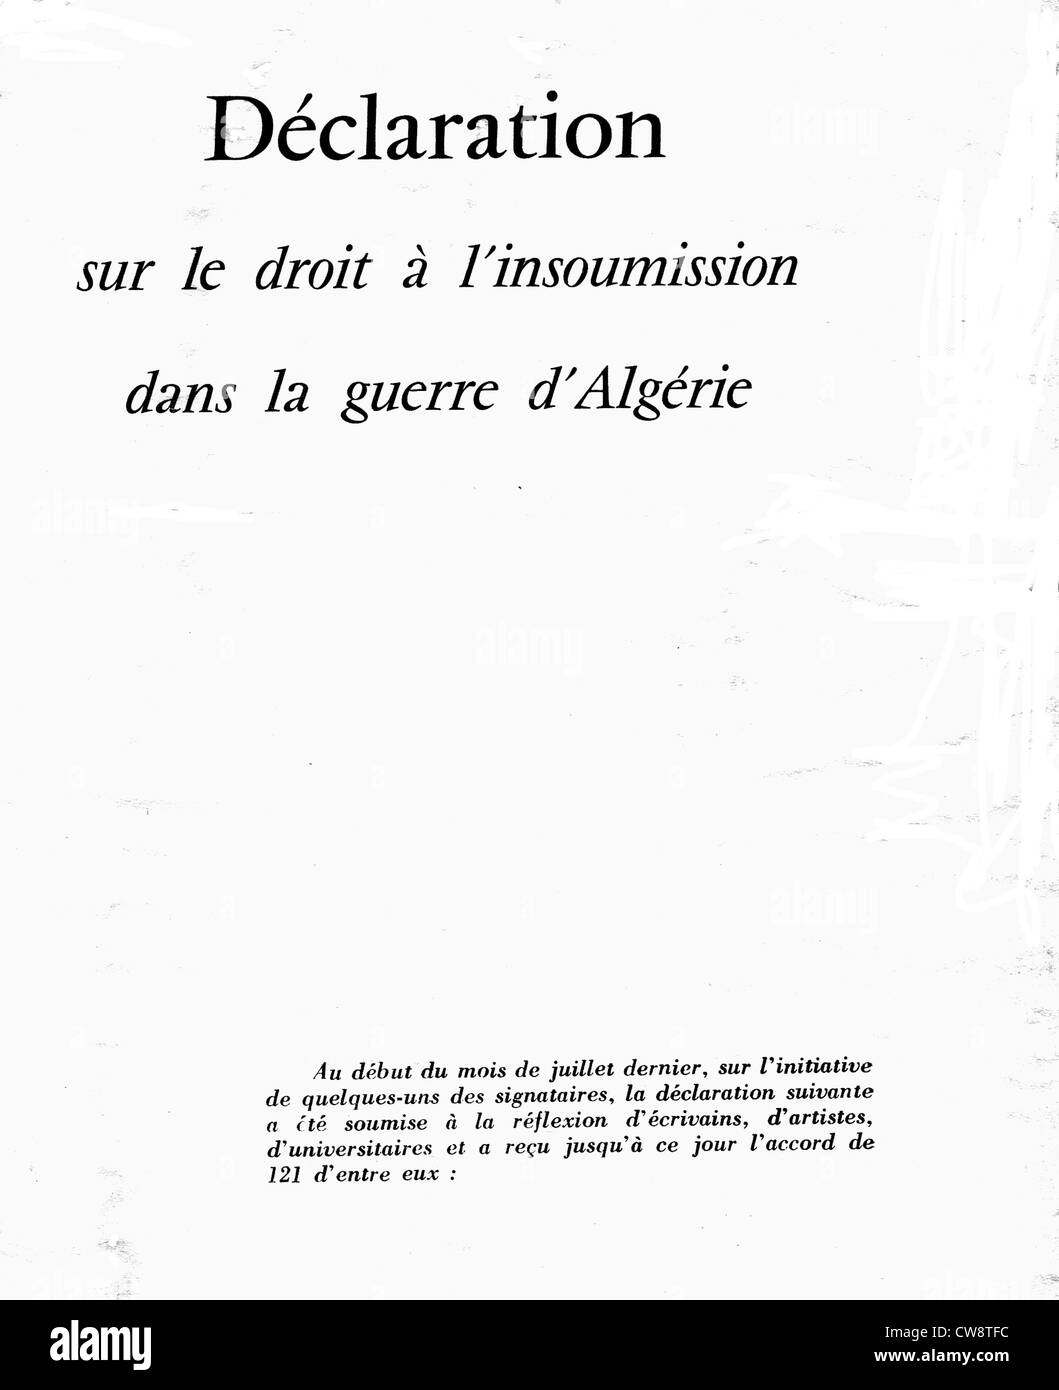 Declaration on right insubordination during Algerian War - Stock Image